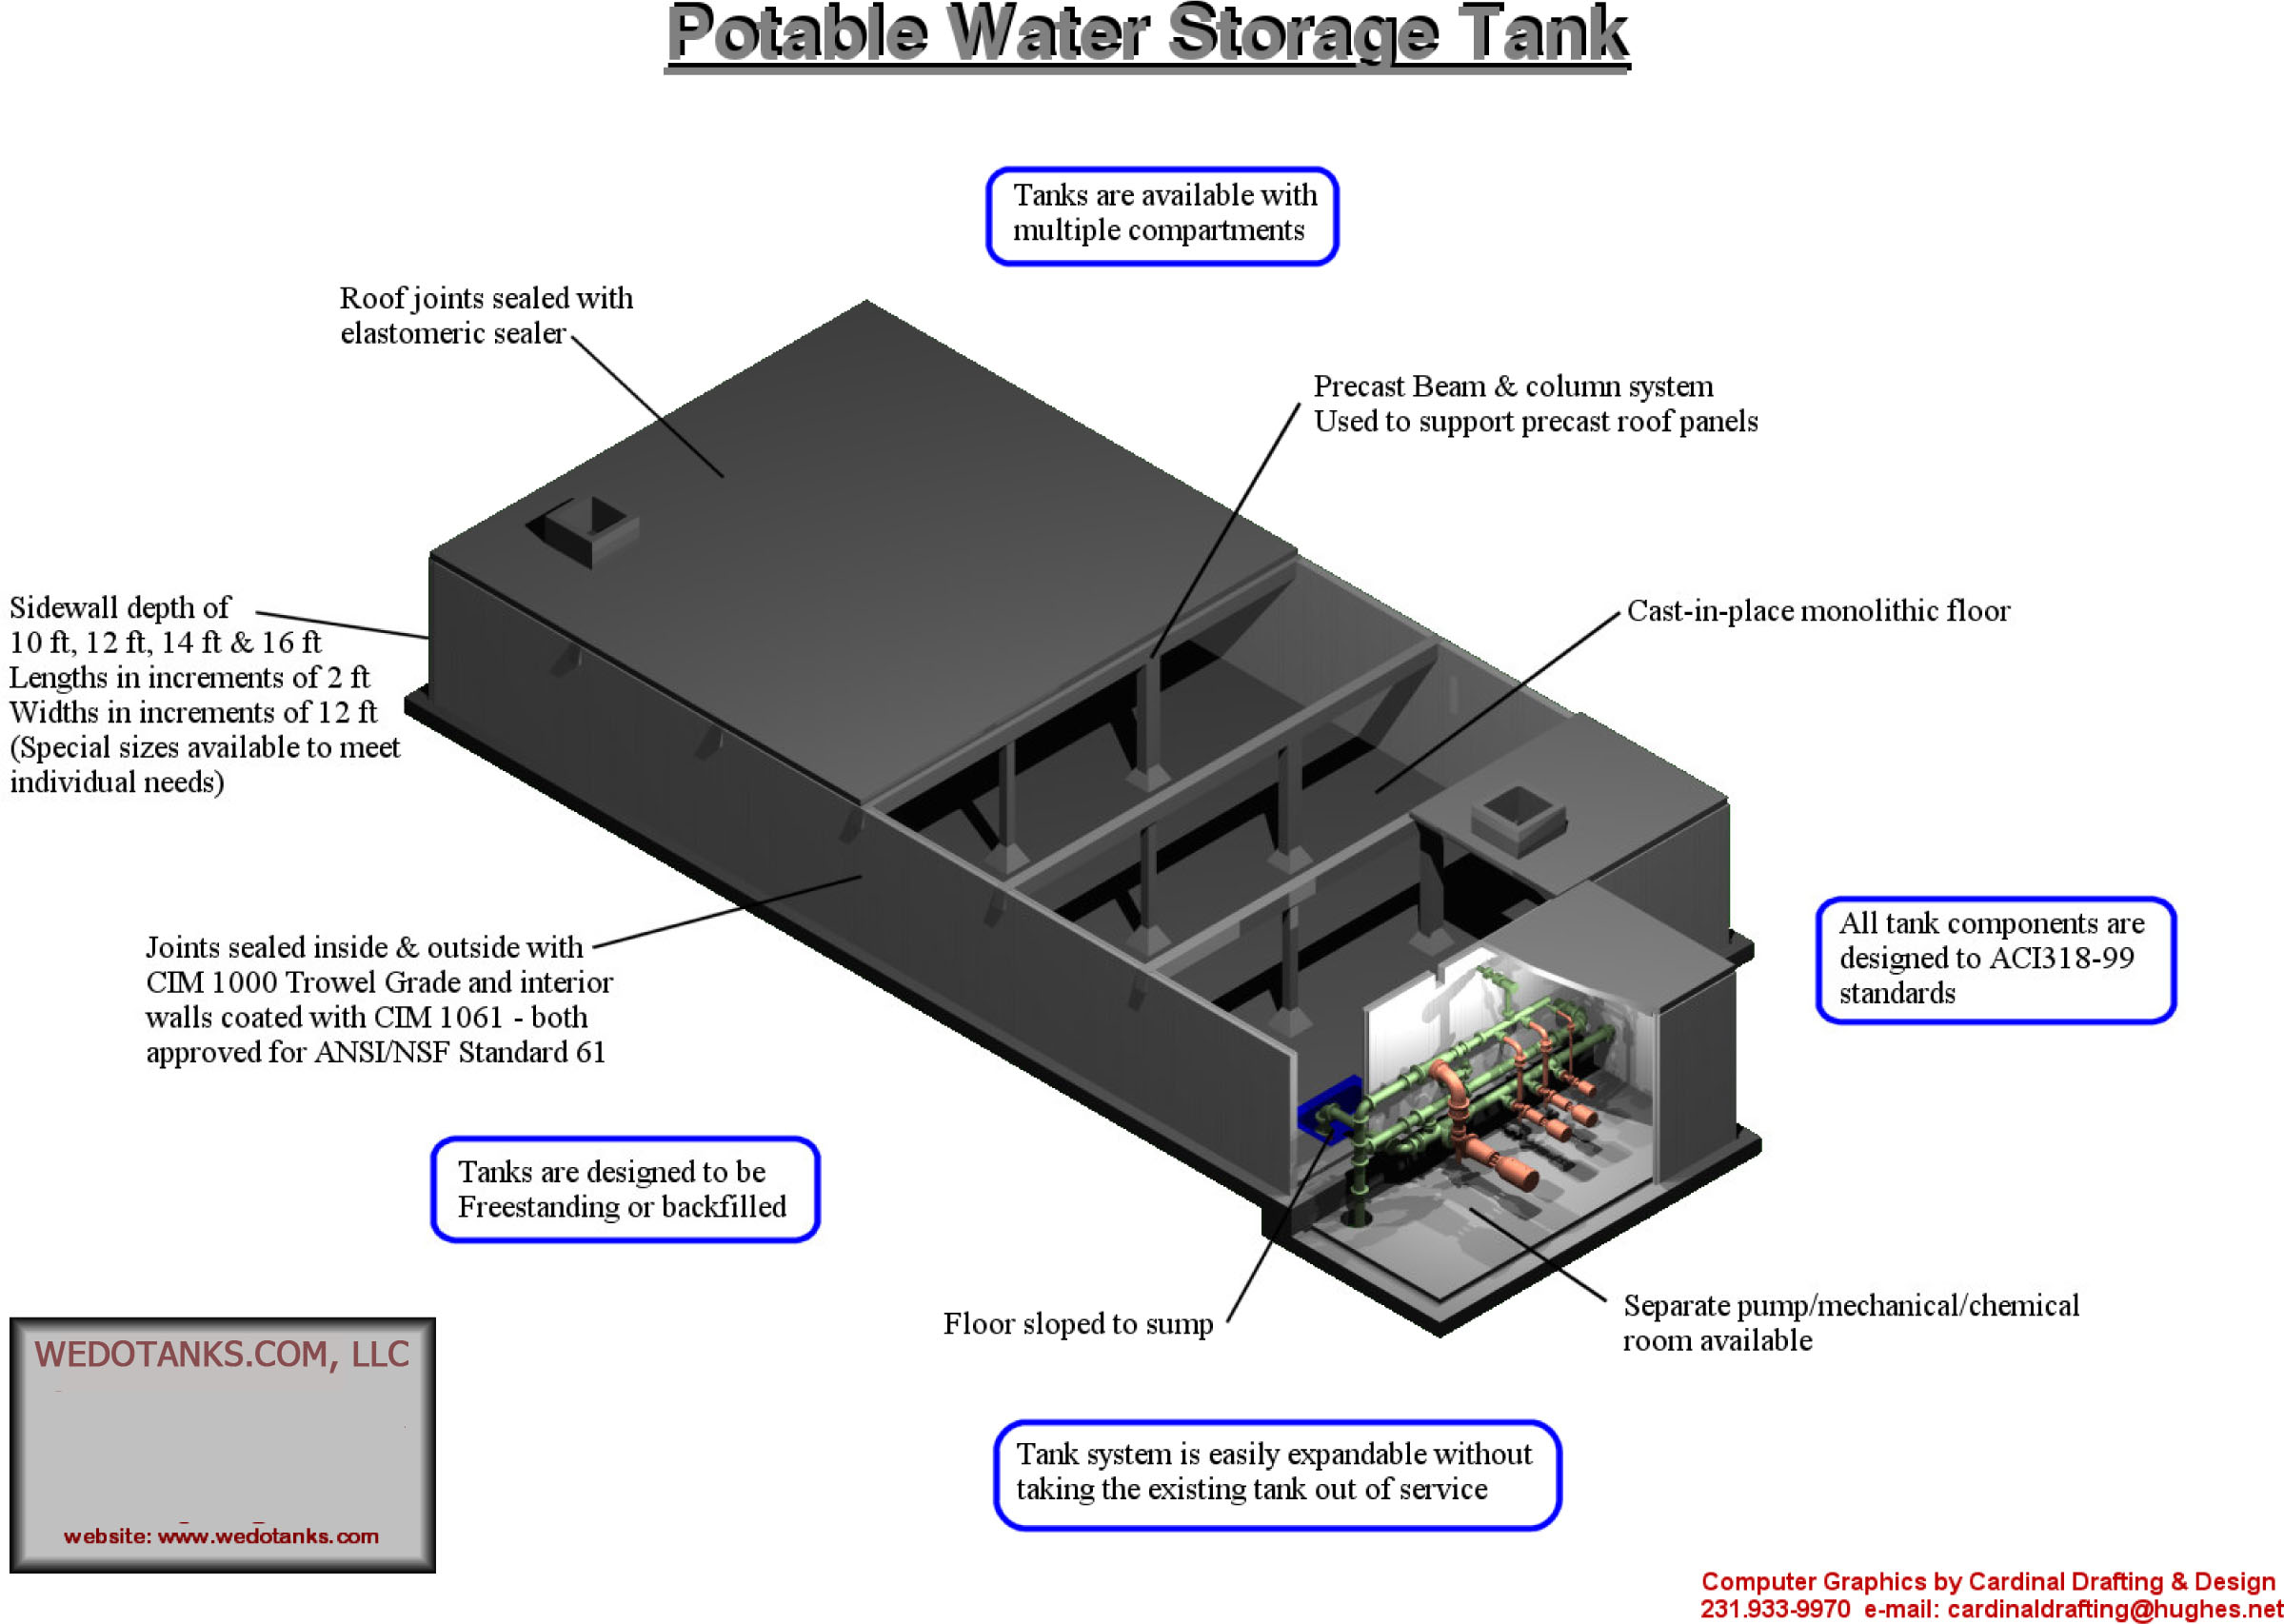 Potable Water Tanks Denton – Wedotanks